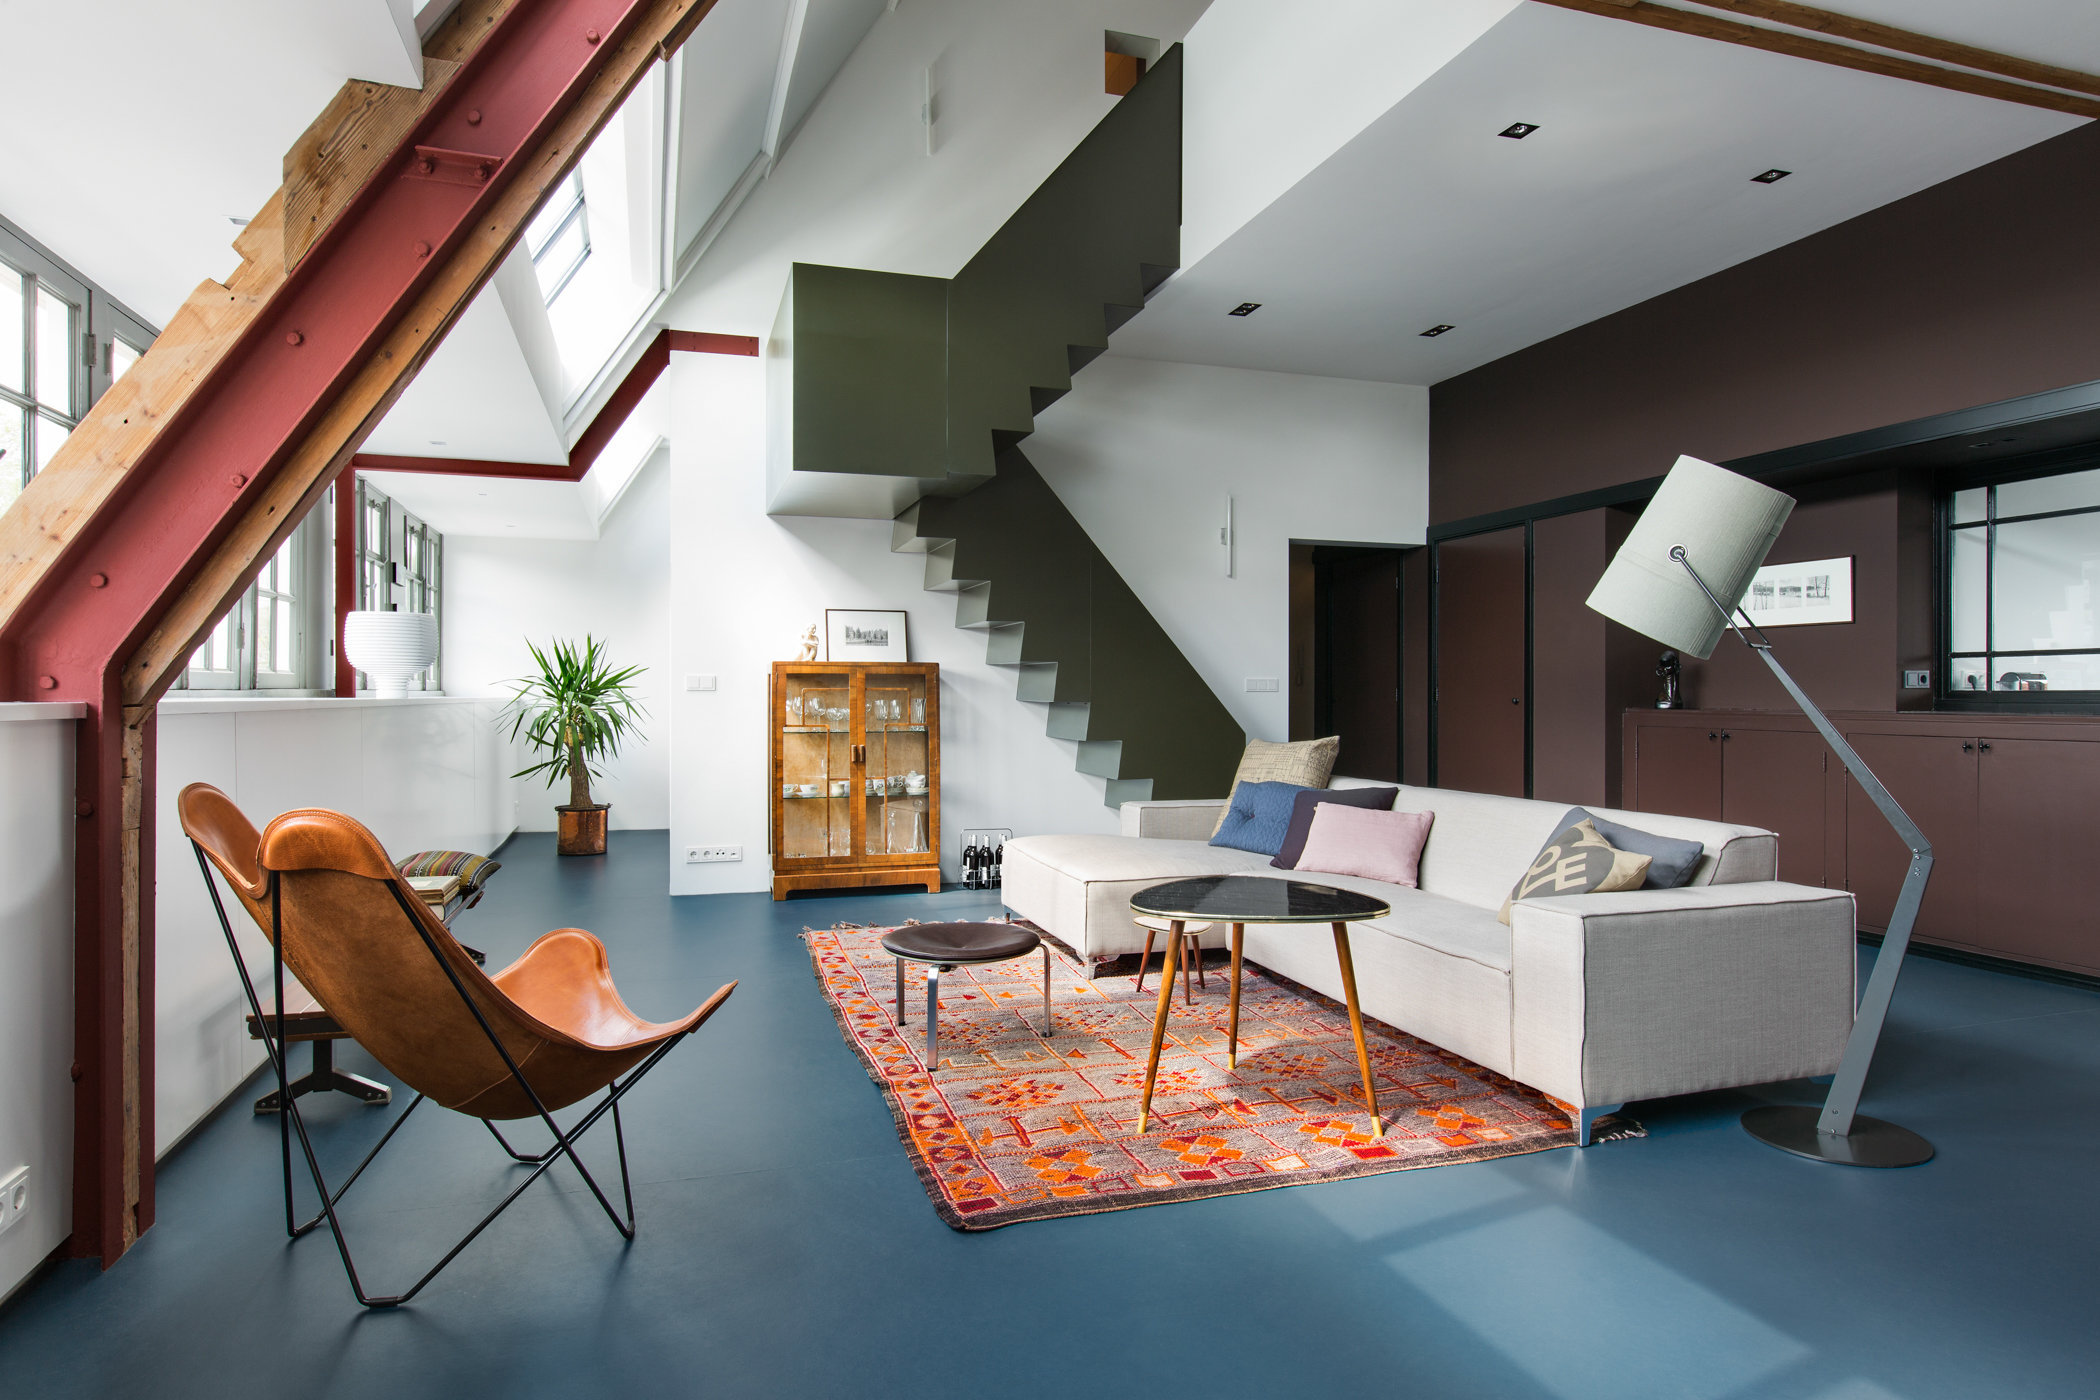 Floris Versterstraat, Amsterdam by Studio Ruim